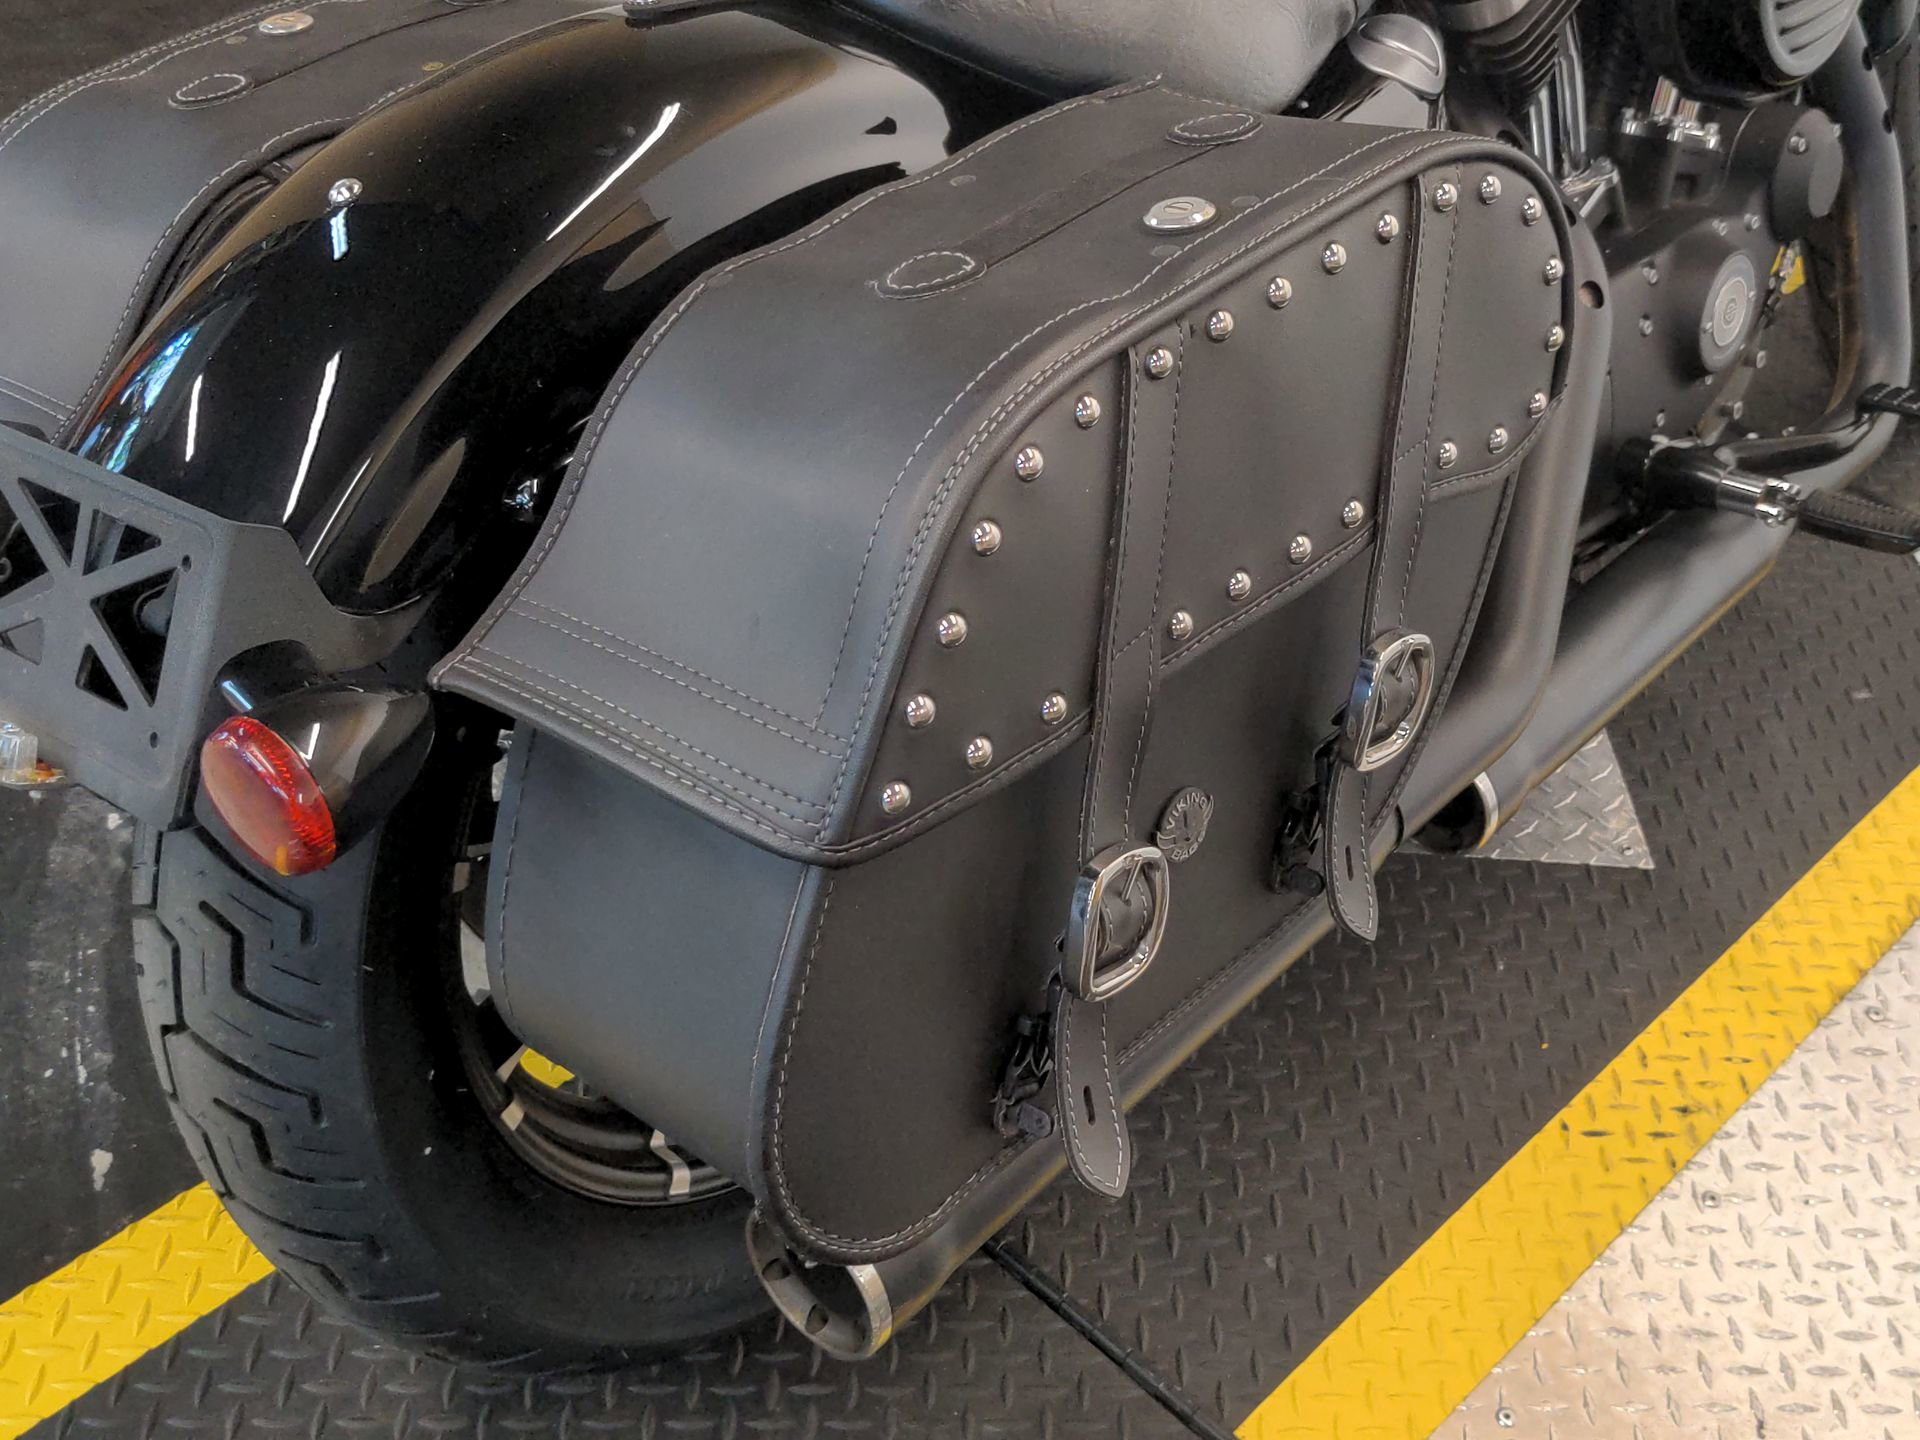 Pre-Owned 2017 Harley-Davidson Iron 883 XL883N